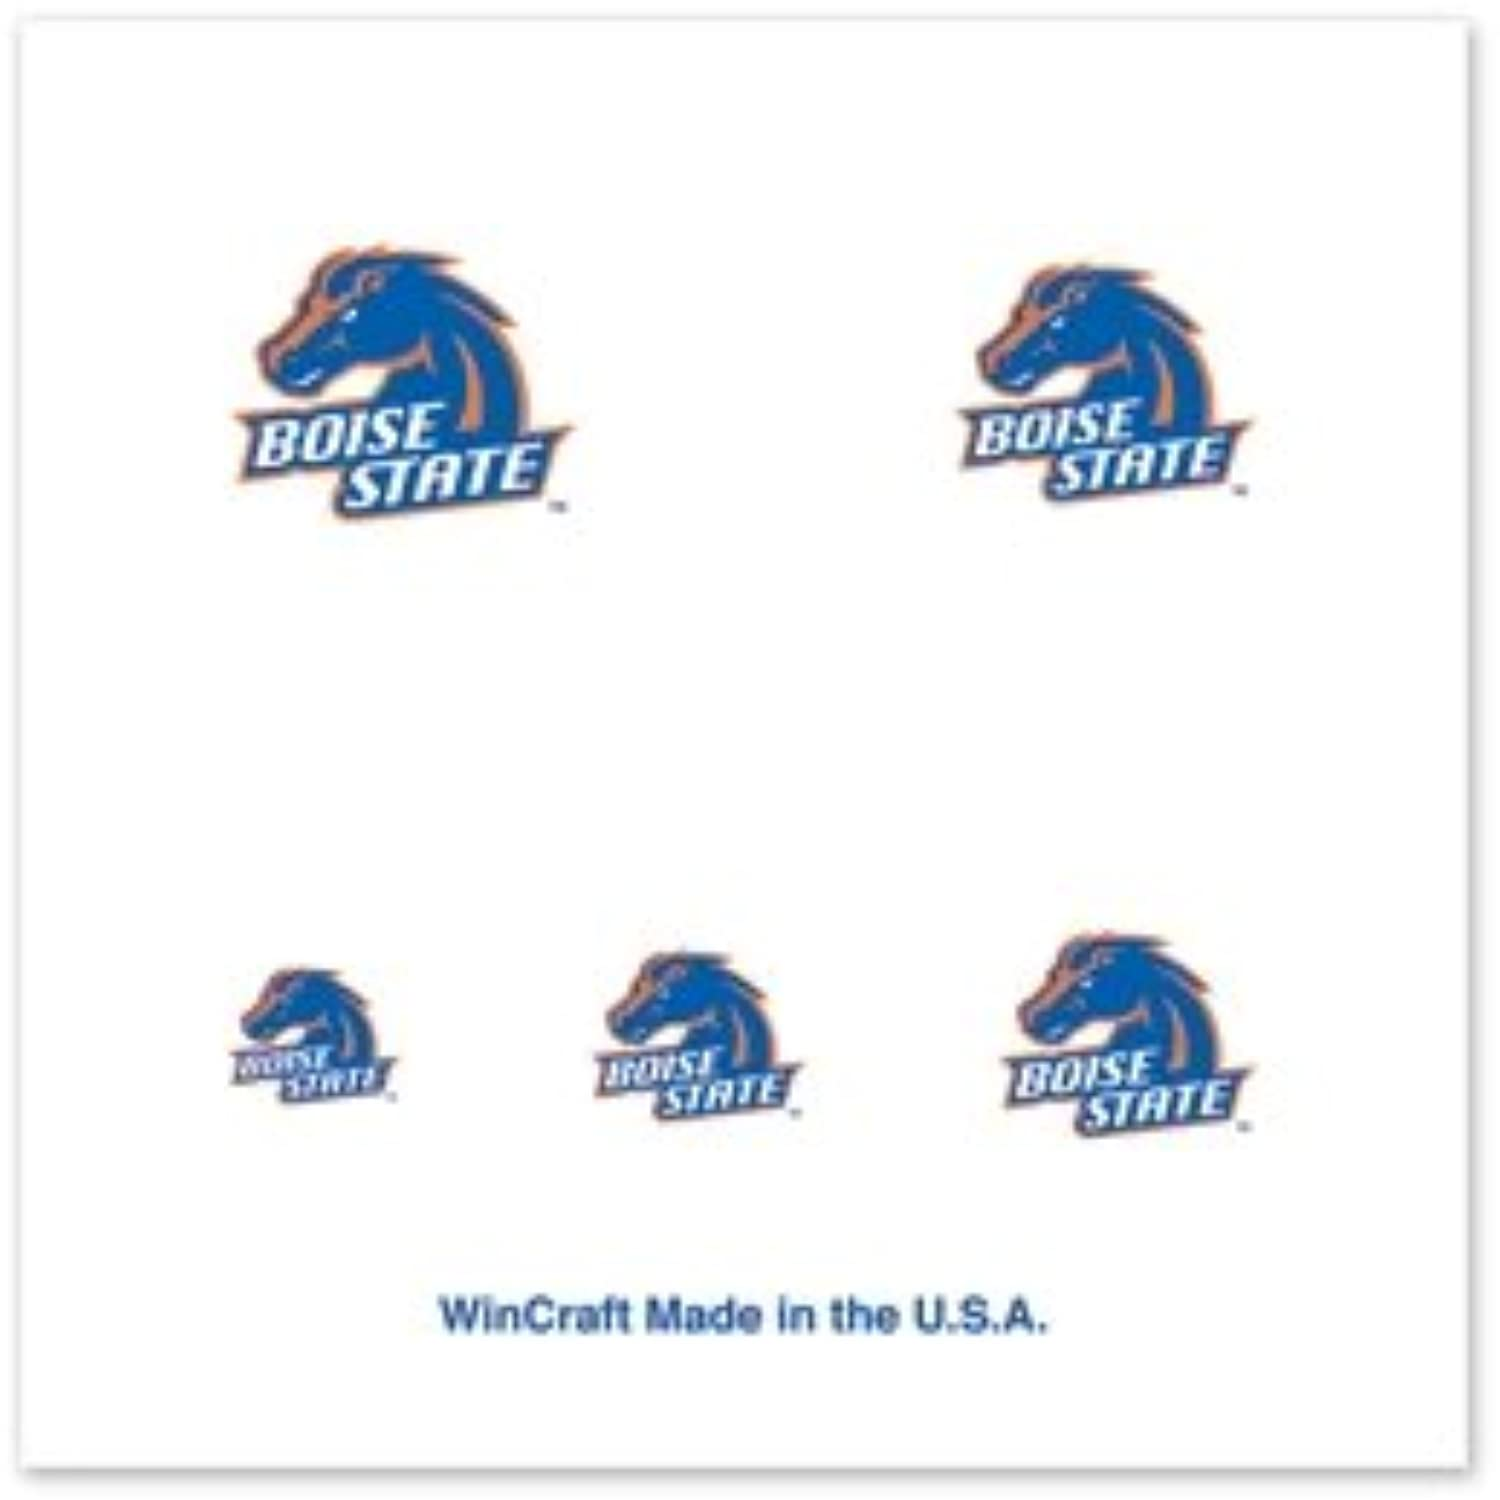 BOISE STATE BRONCOS OFFICIAL LOGO FINGERNAIL TATTOOS